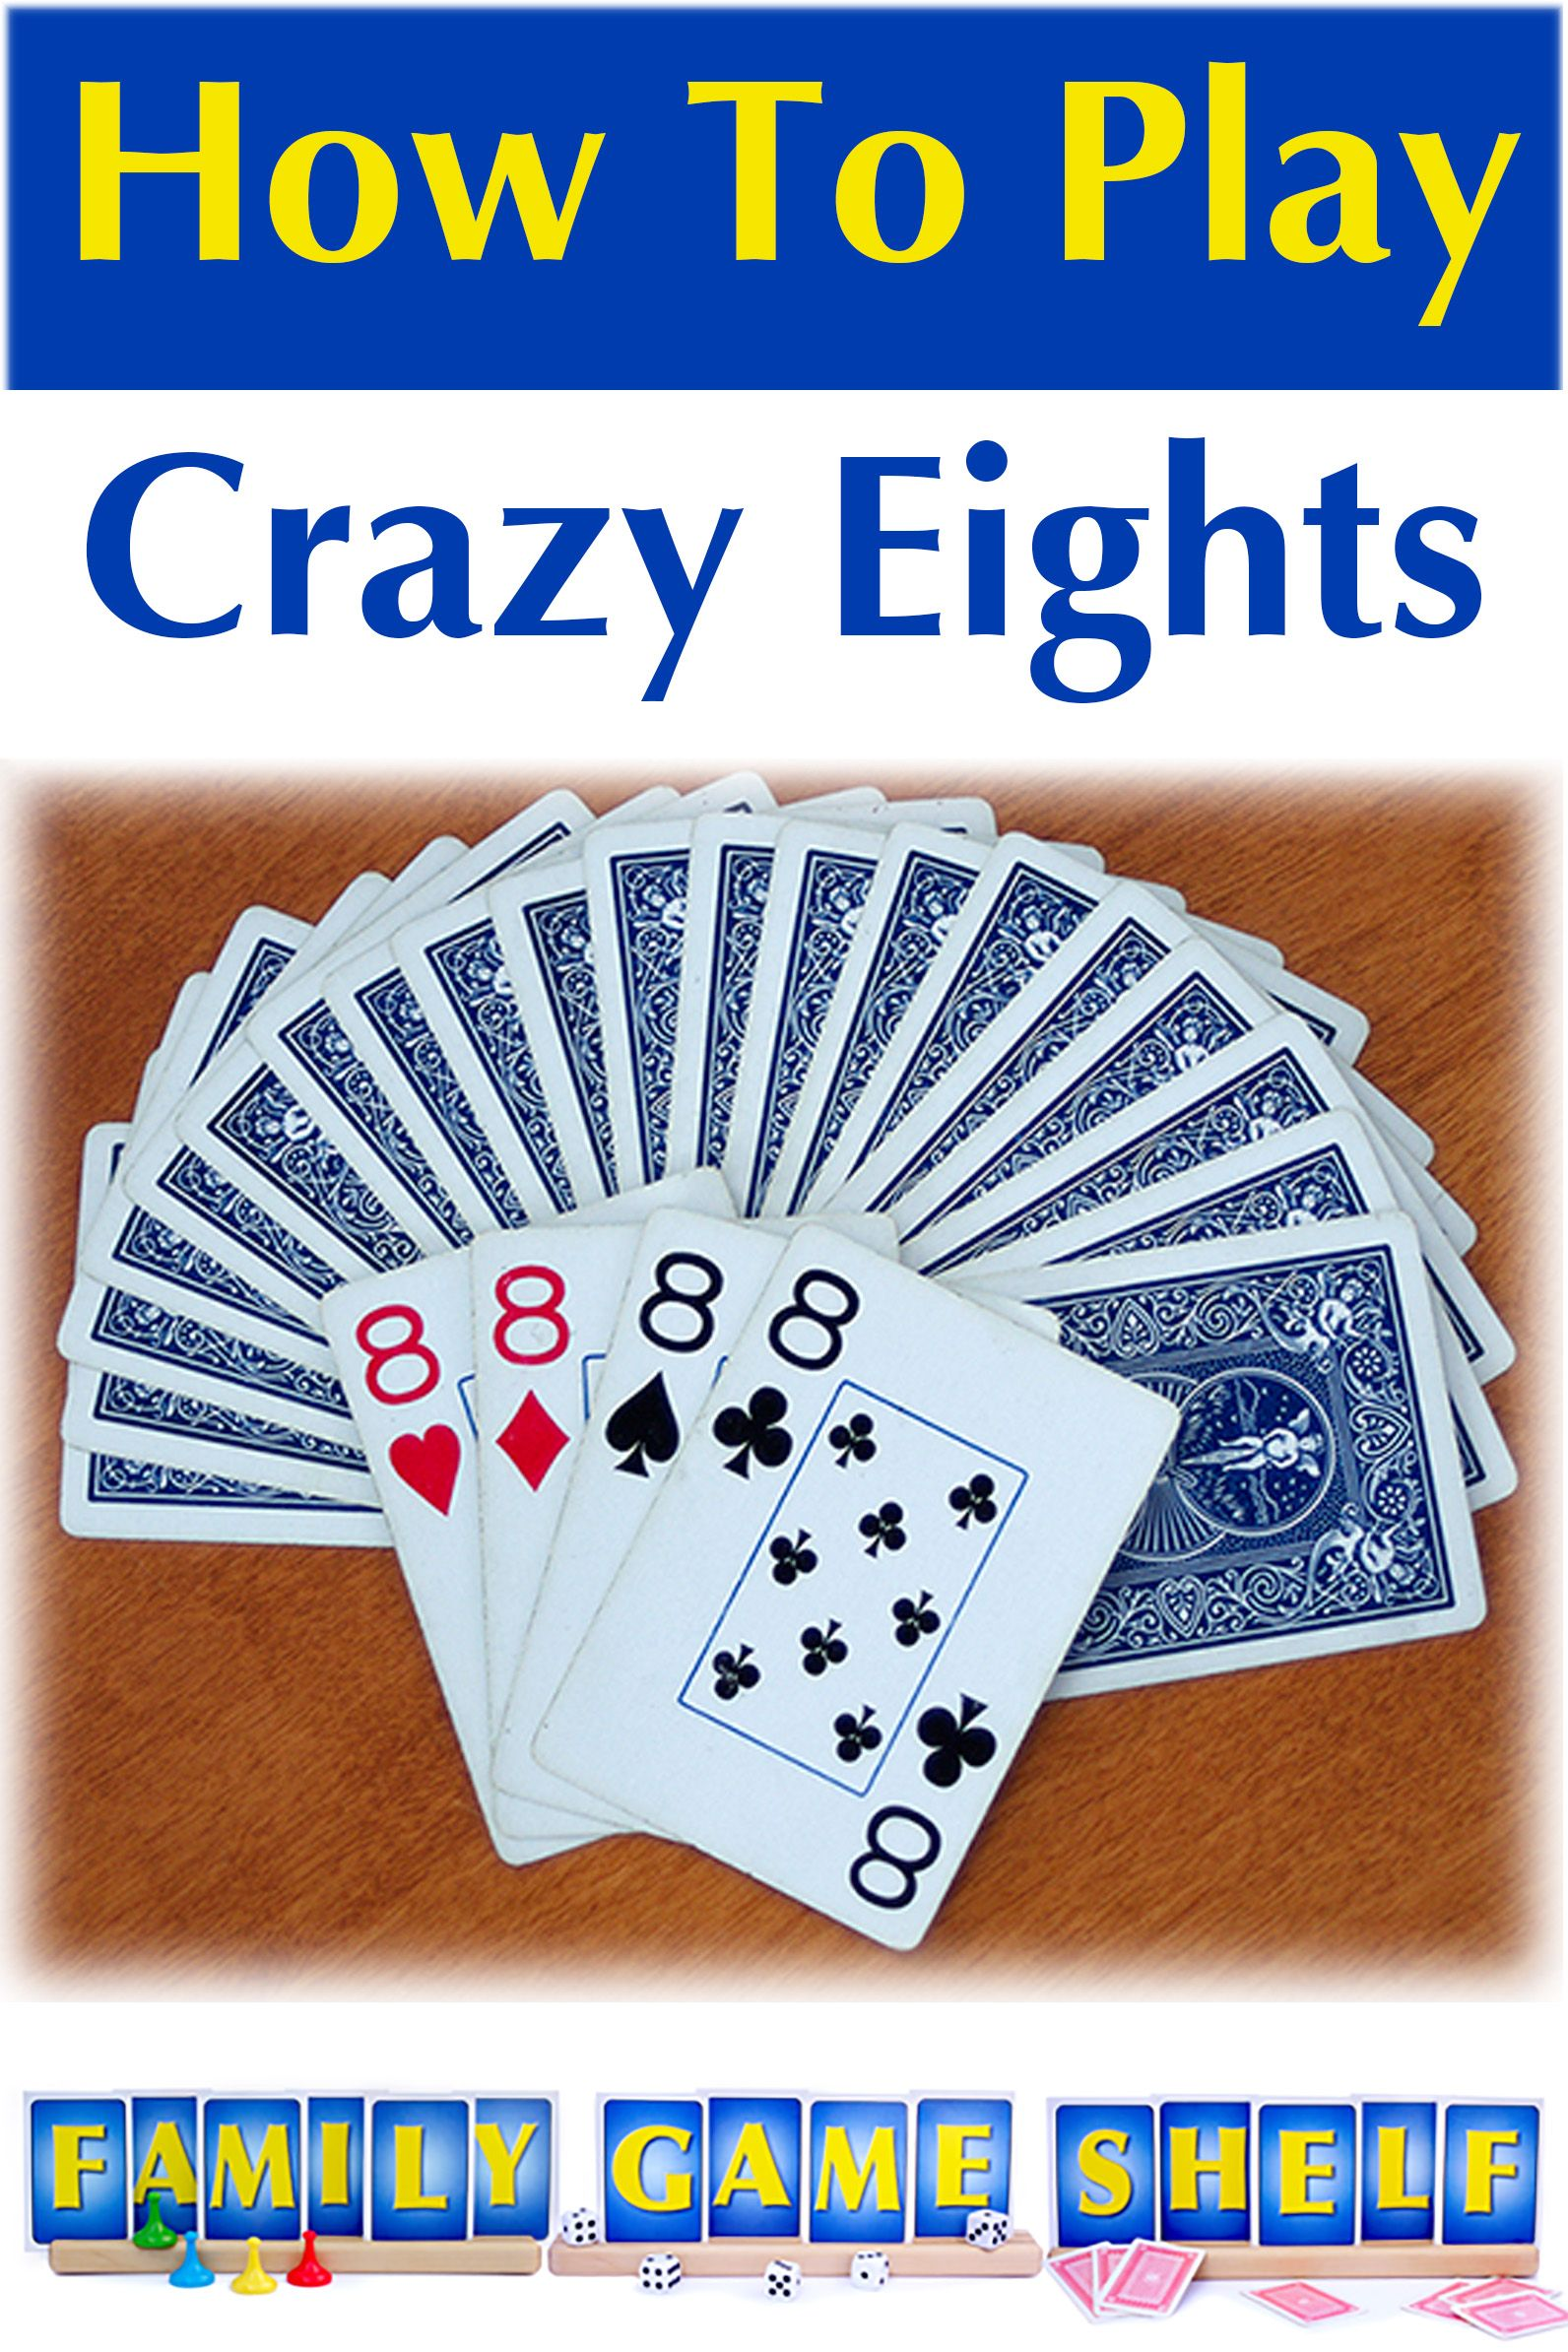 Crazy Eights Is A Fun And Easy Card Game For The Whole Family Check Out All The Rules At Familygameshelf Fun Card Games Card Games For Kids Family Card Games